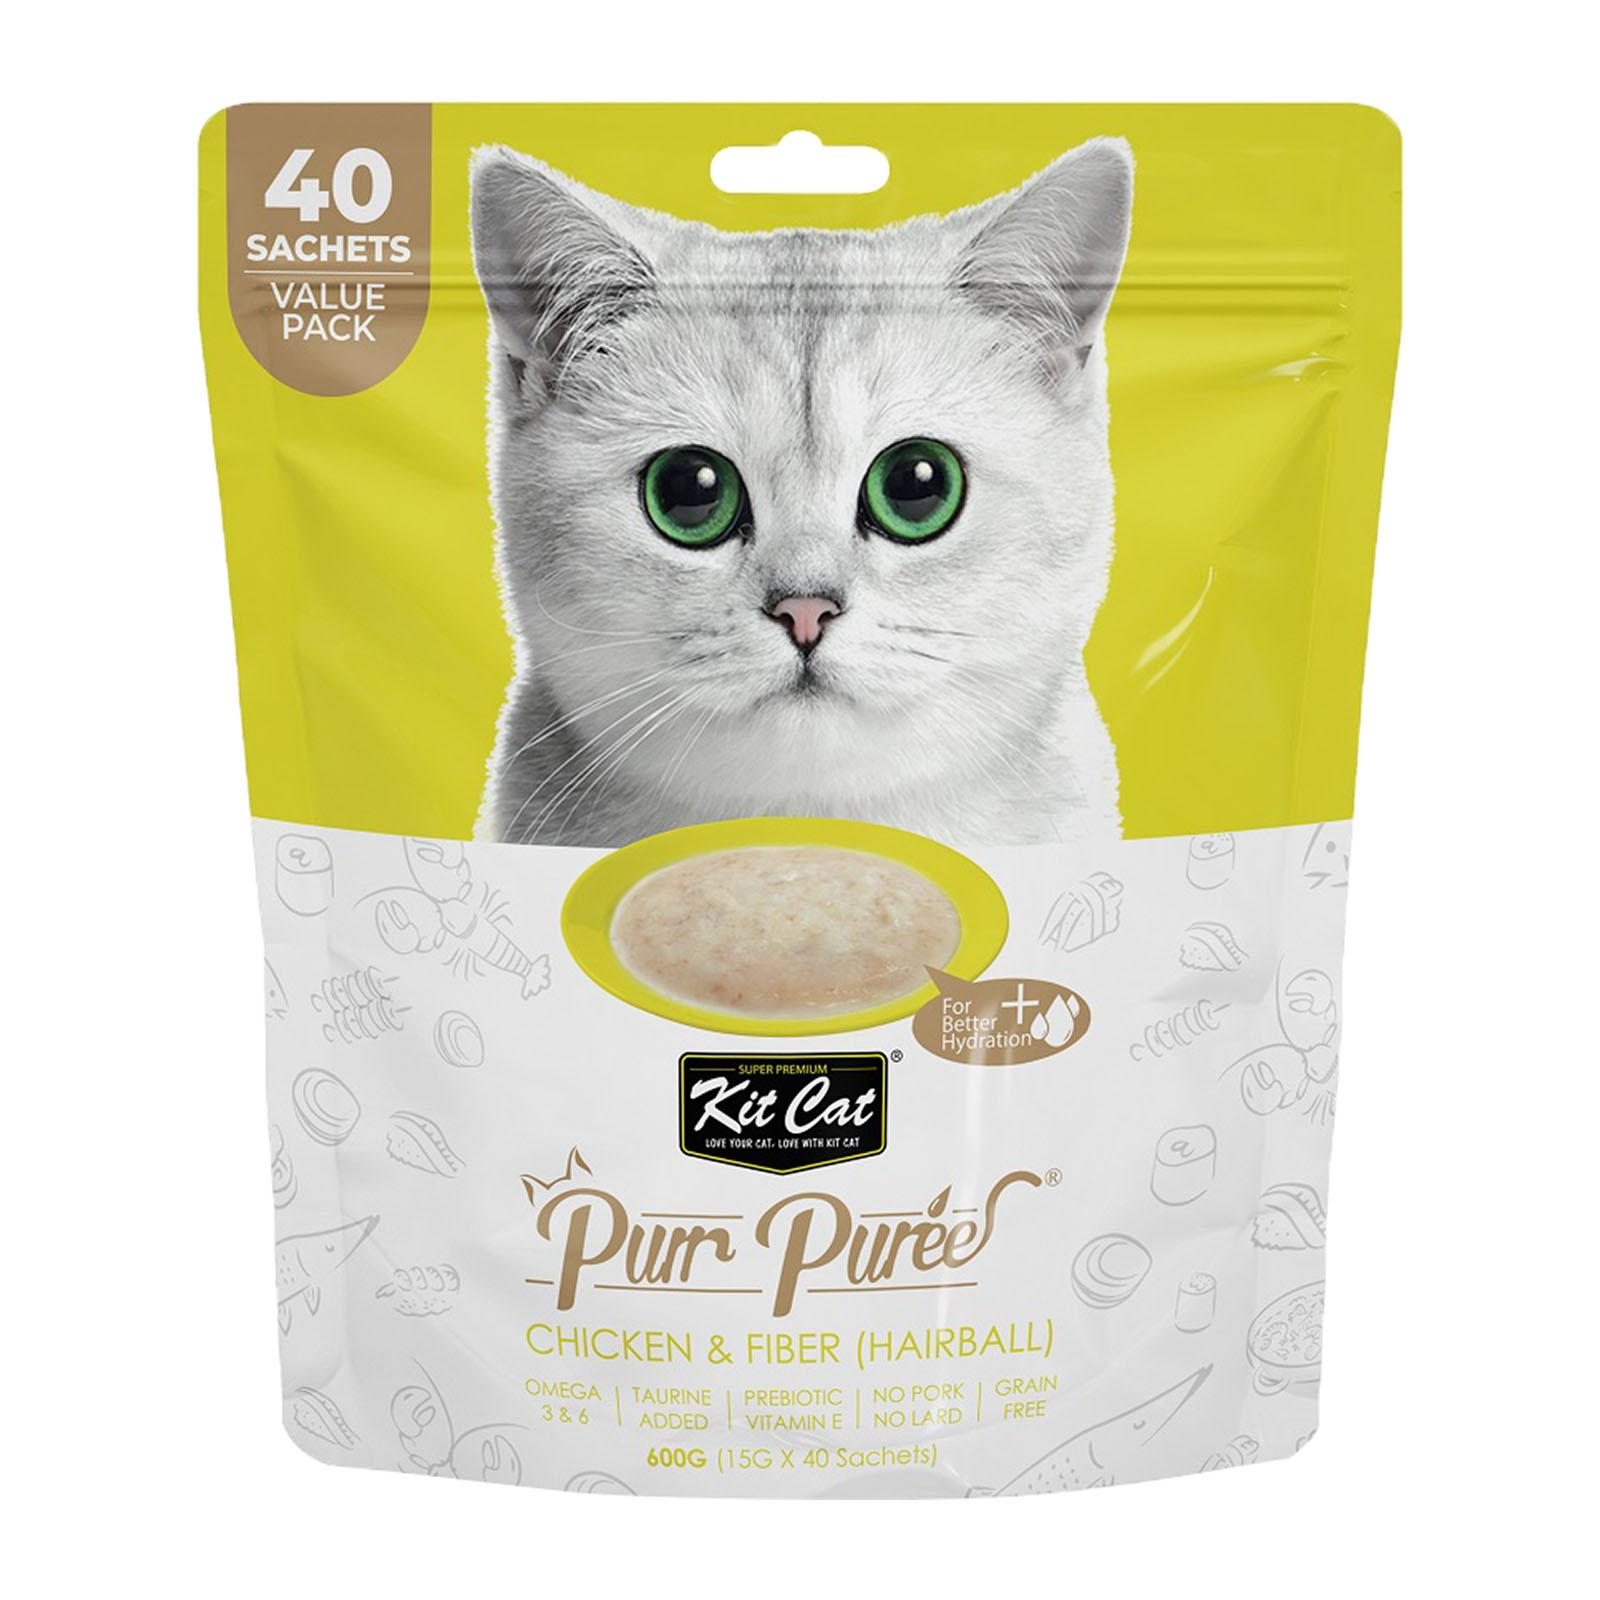 Kit Cat Kit Cat Purrpuree Chicken And Fiber 600 G Value Pack